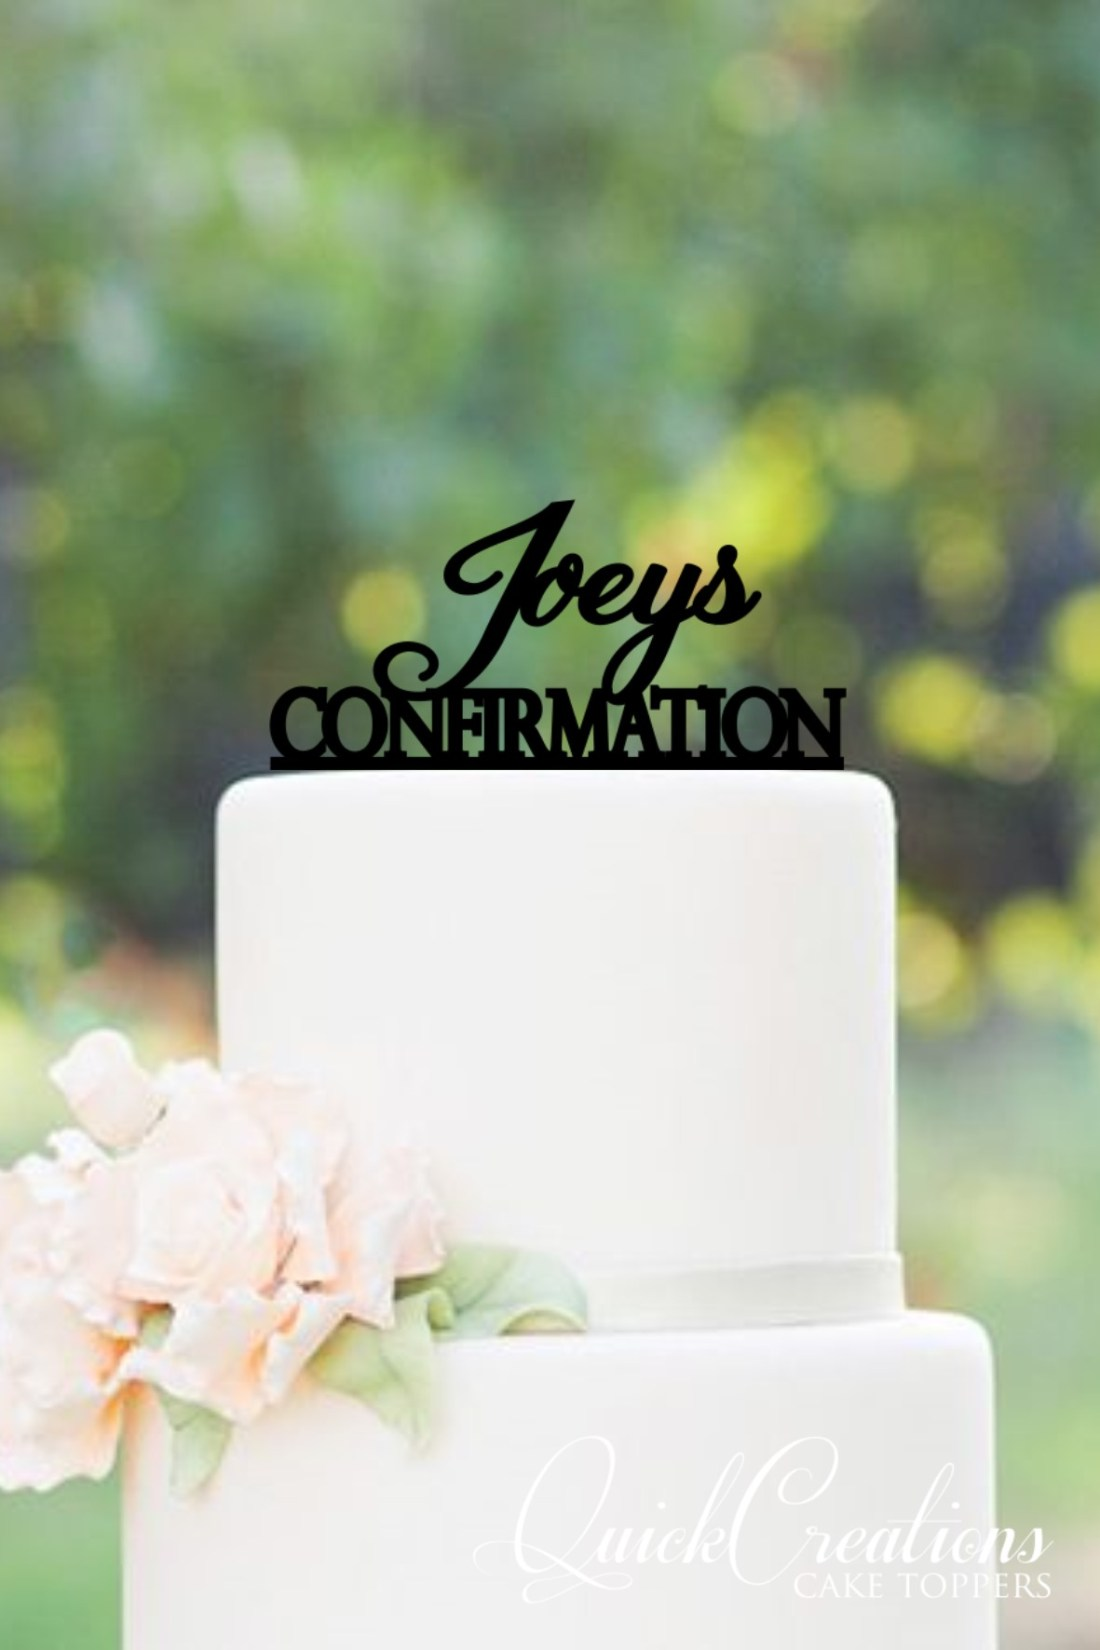 Quick Creations Cake Topper - Joey's Confirmation